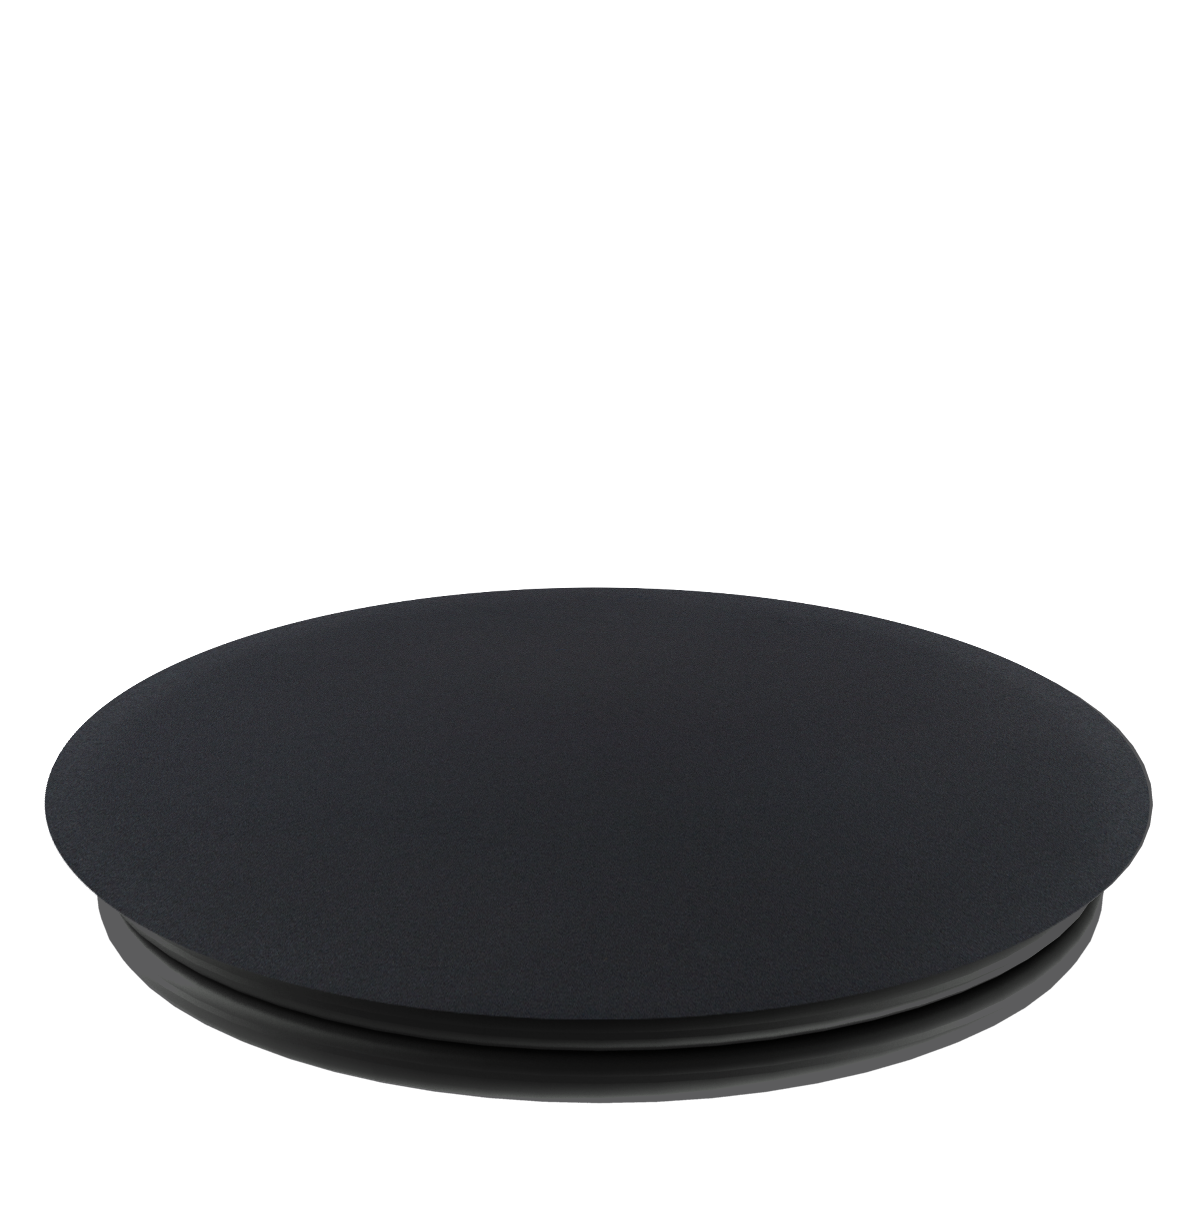 PopSockets Grip Aluminum Black